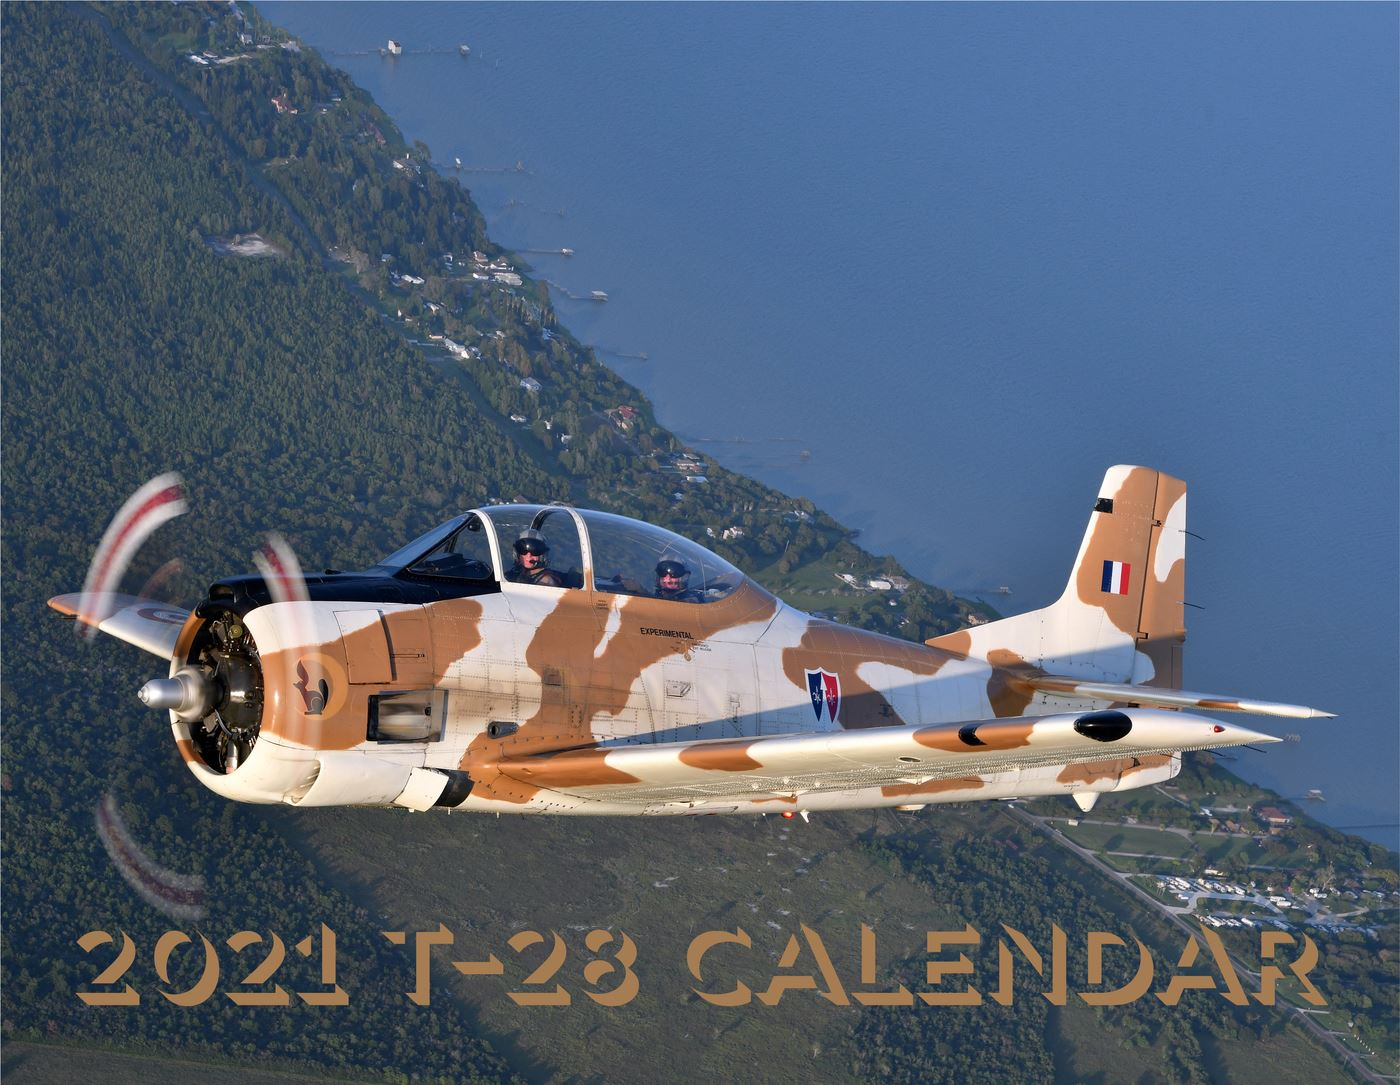 My 11th year designing a T-28 calendar dedicated to the T-28, the aircraft and the pilots featuring photographs from many talented aviation photographers from around the world.